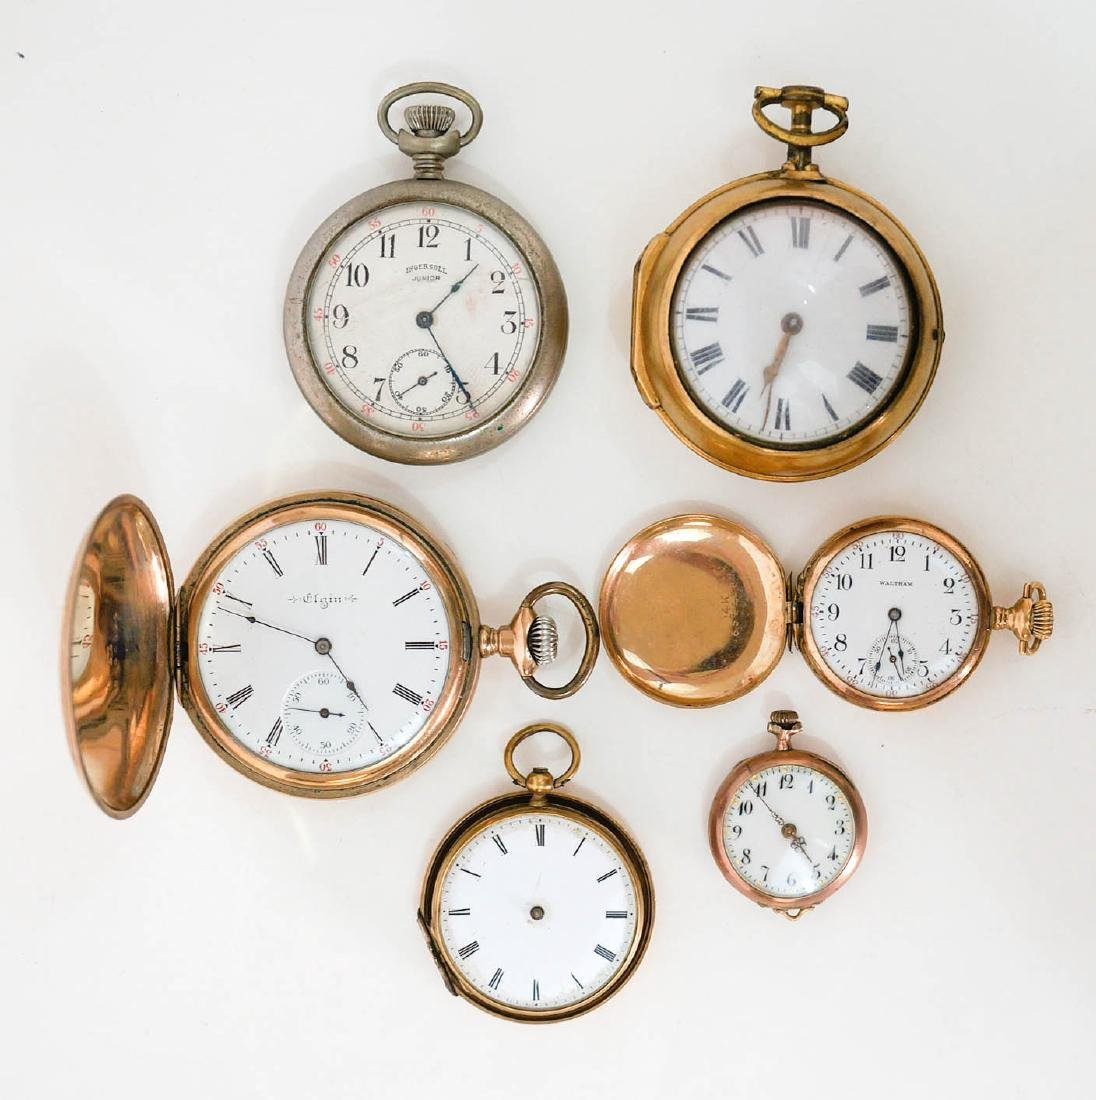 A Group of Six Antique Watches For Parts or Repair